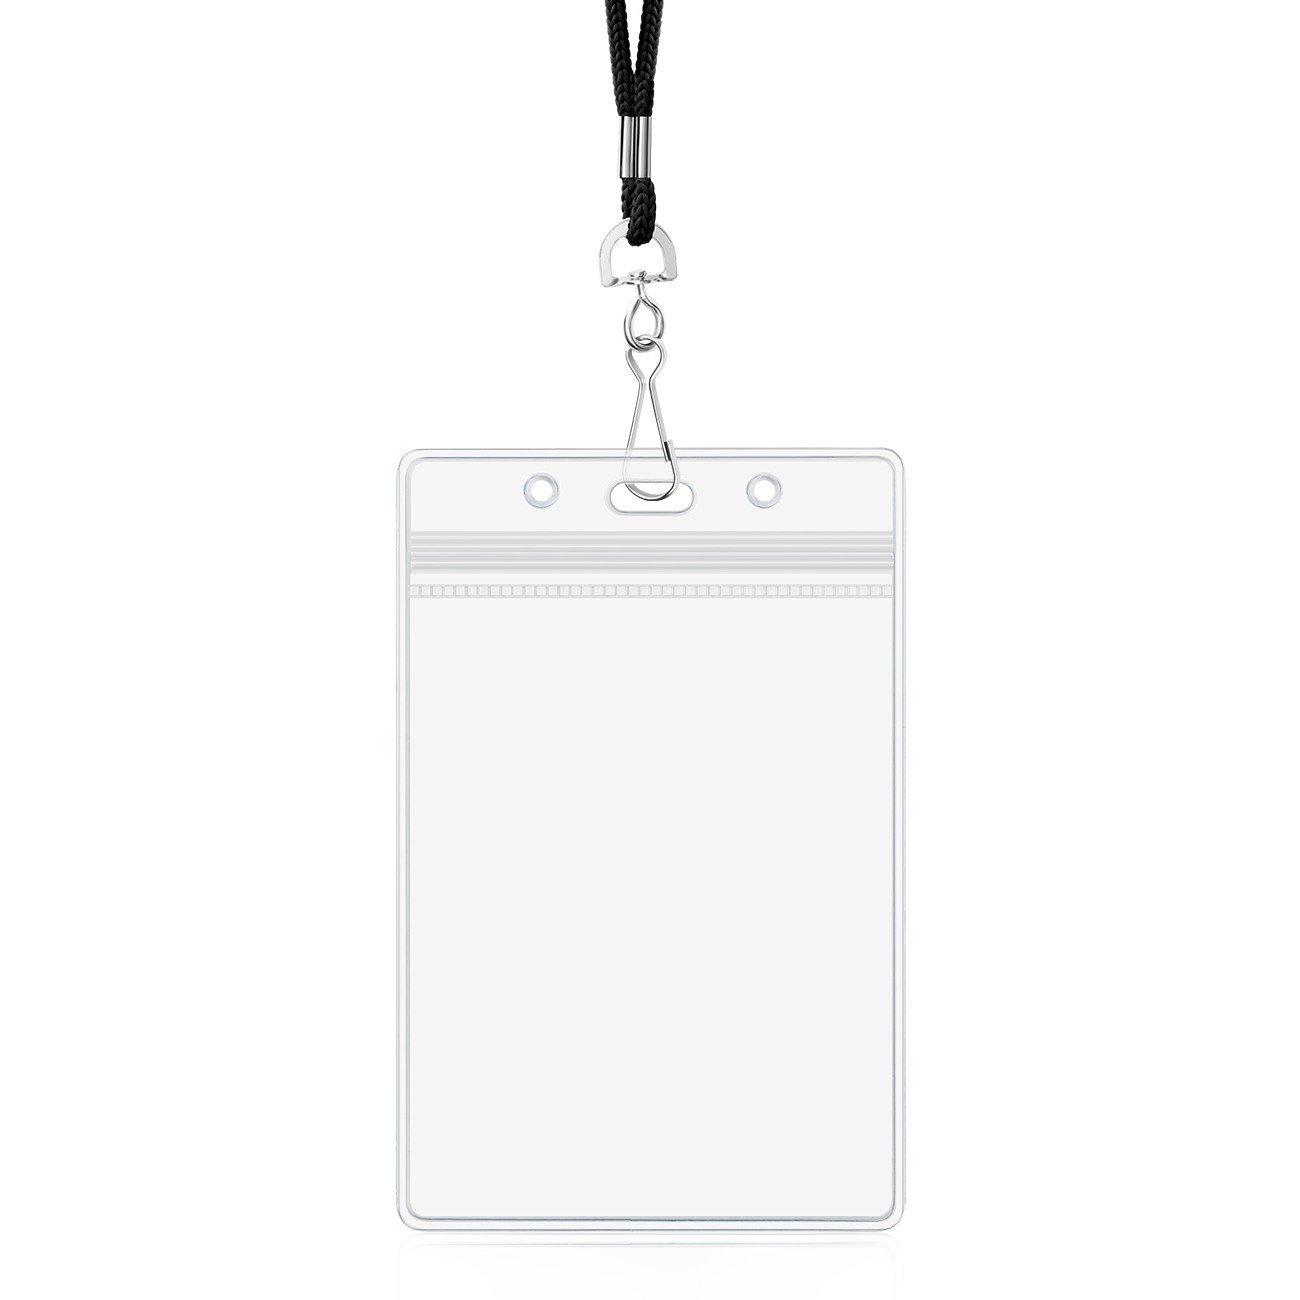 Badge Holder with Lanyard Vertical ID Card Holder Clear Plastic Name Tag Holders Waterproof by ZHEGUI (Satin Black, 25 Pack) by ZHEGUI (Image #6)